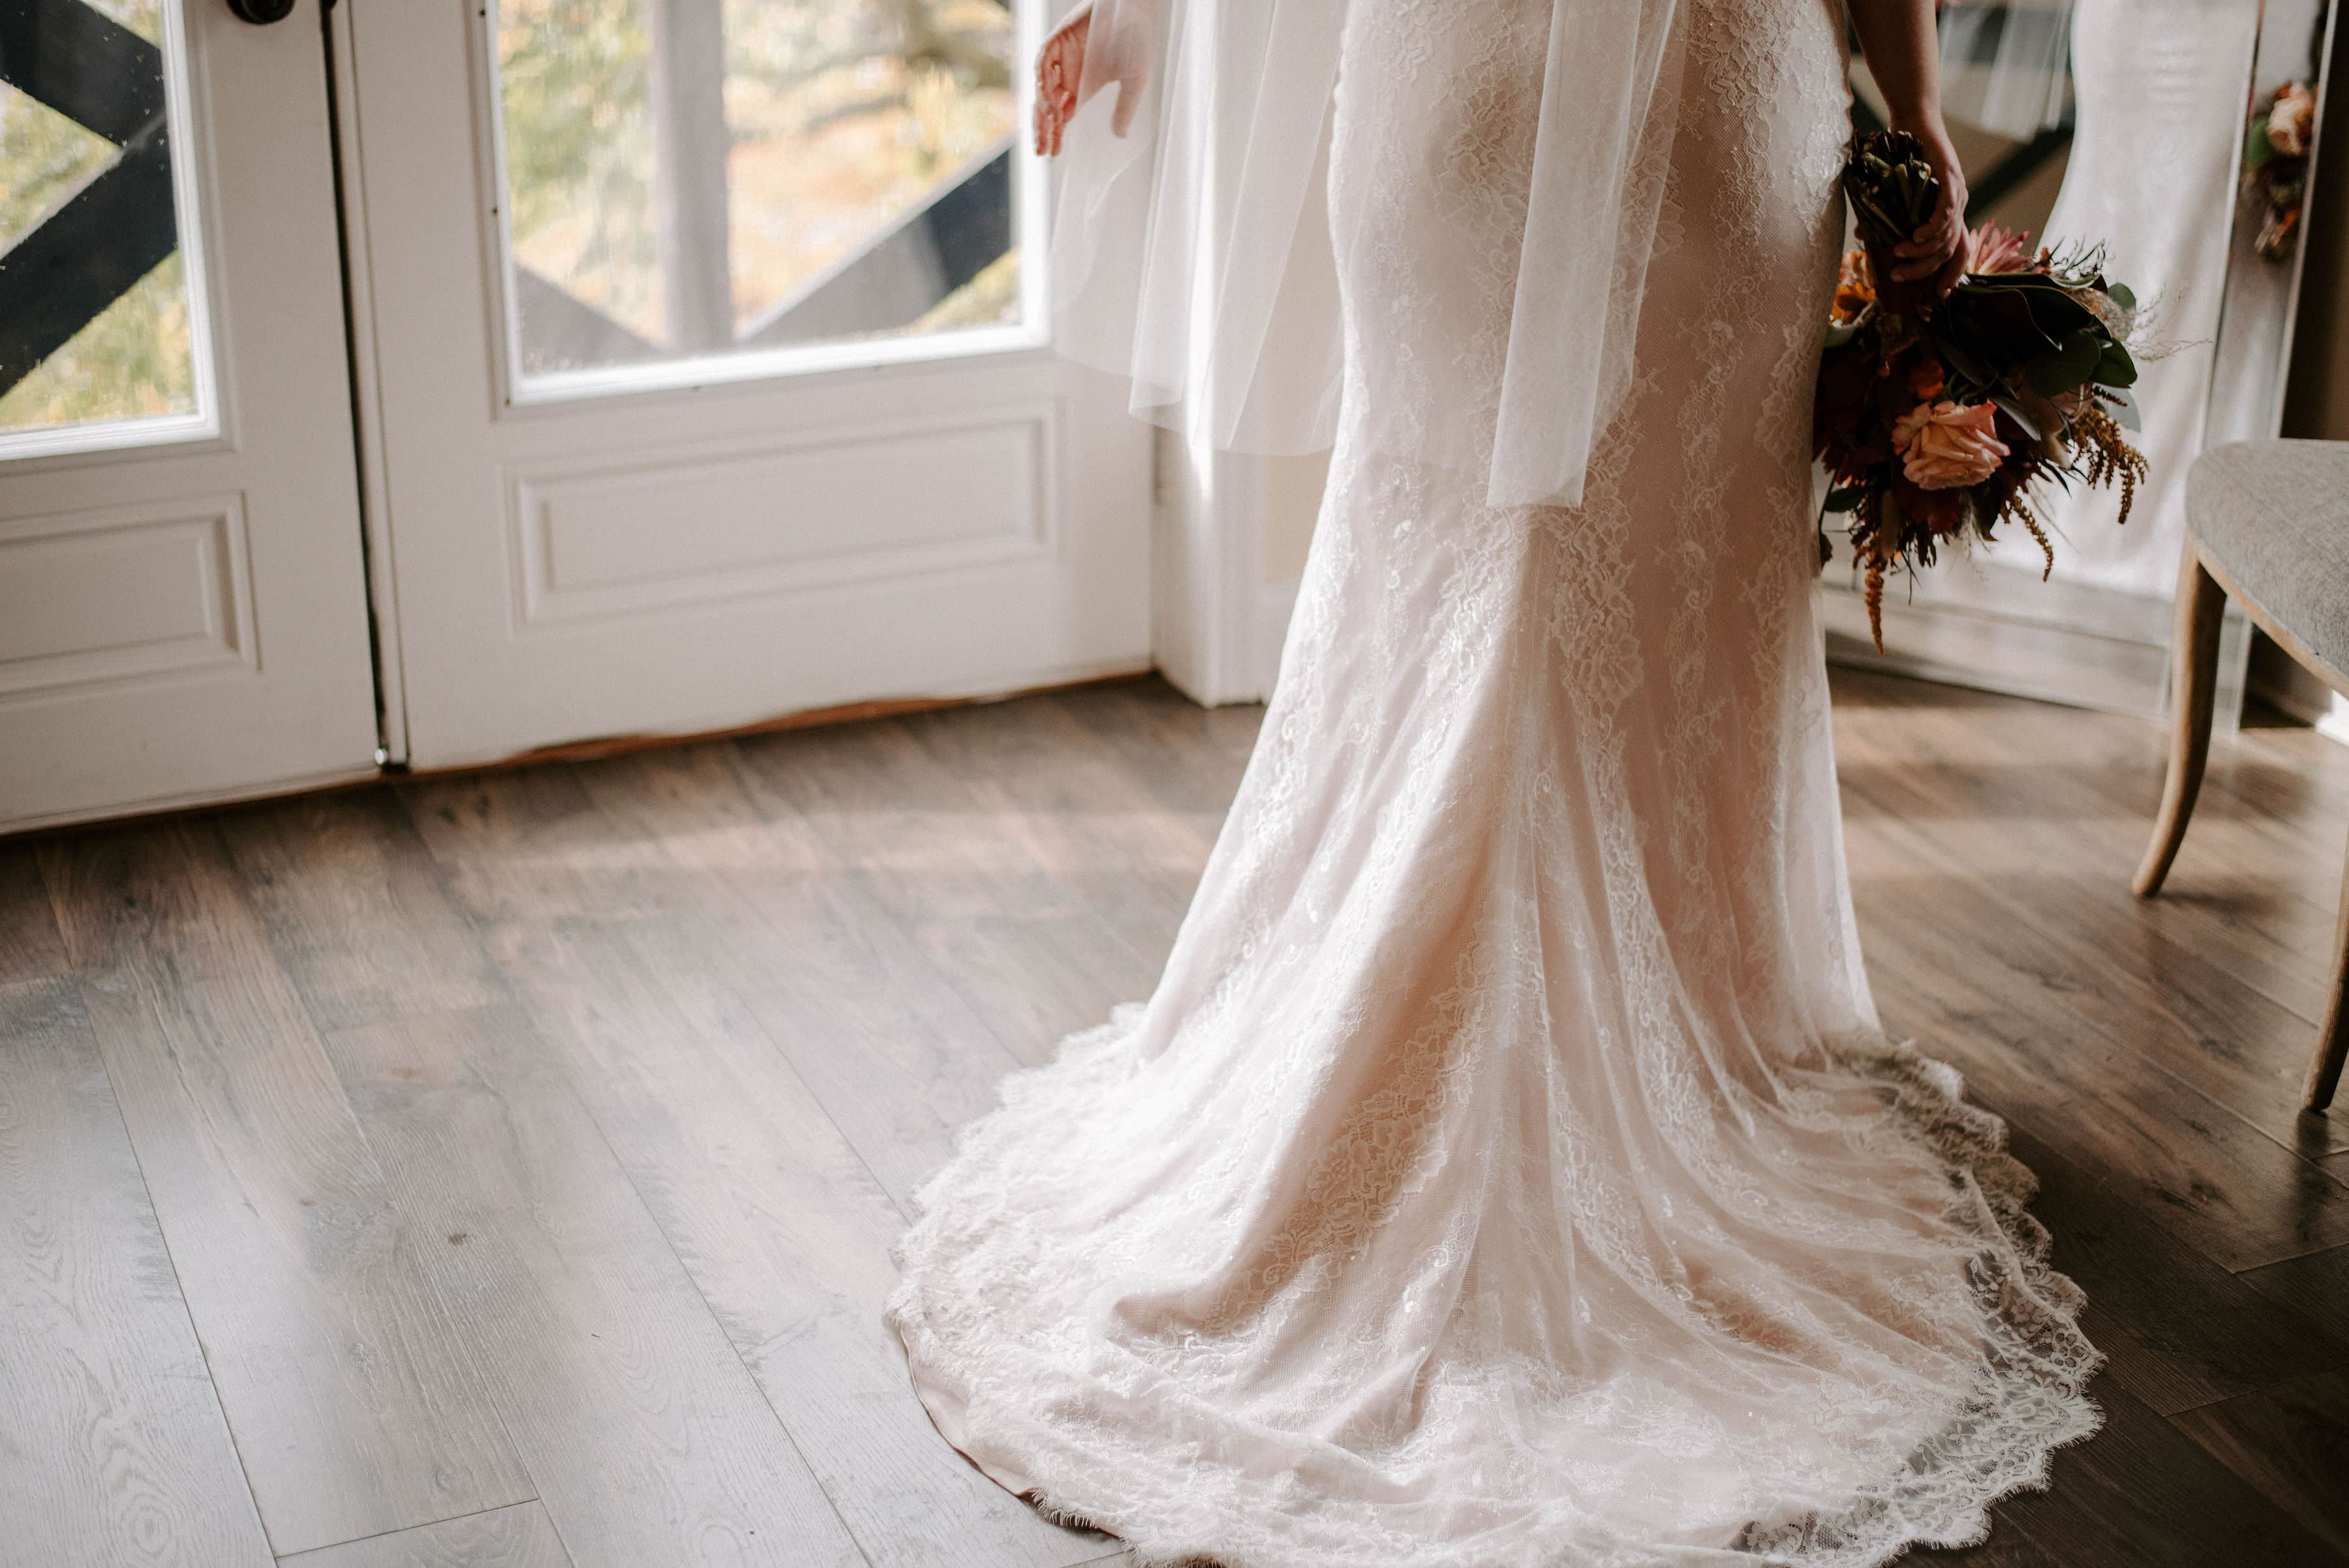 Bride in her gown with bouquet